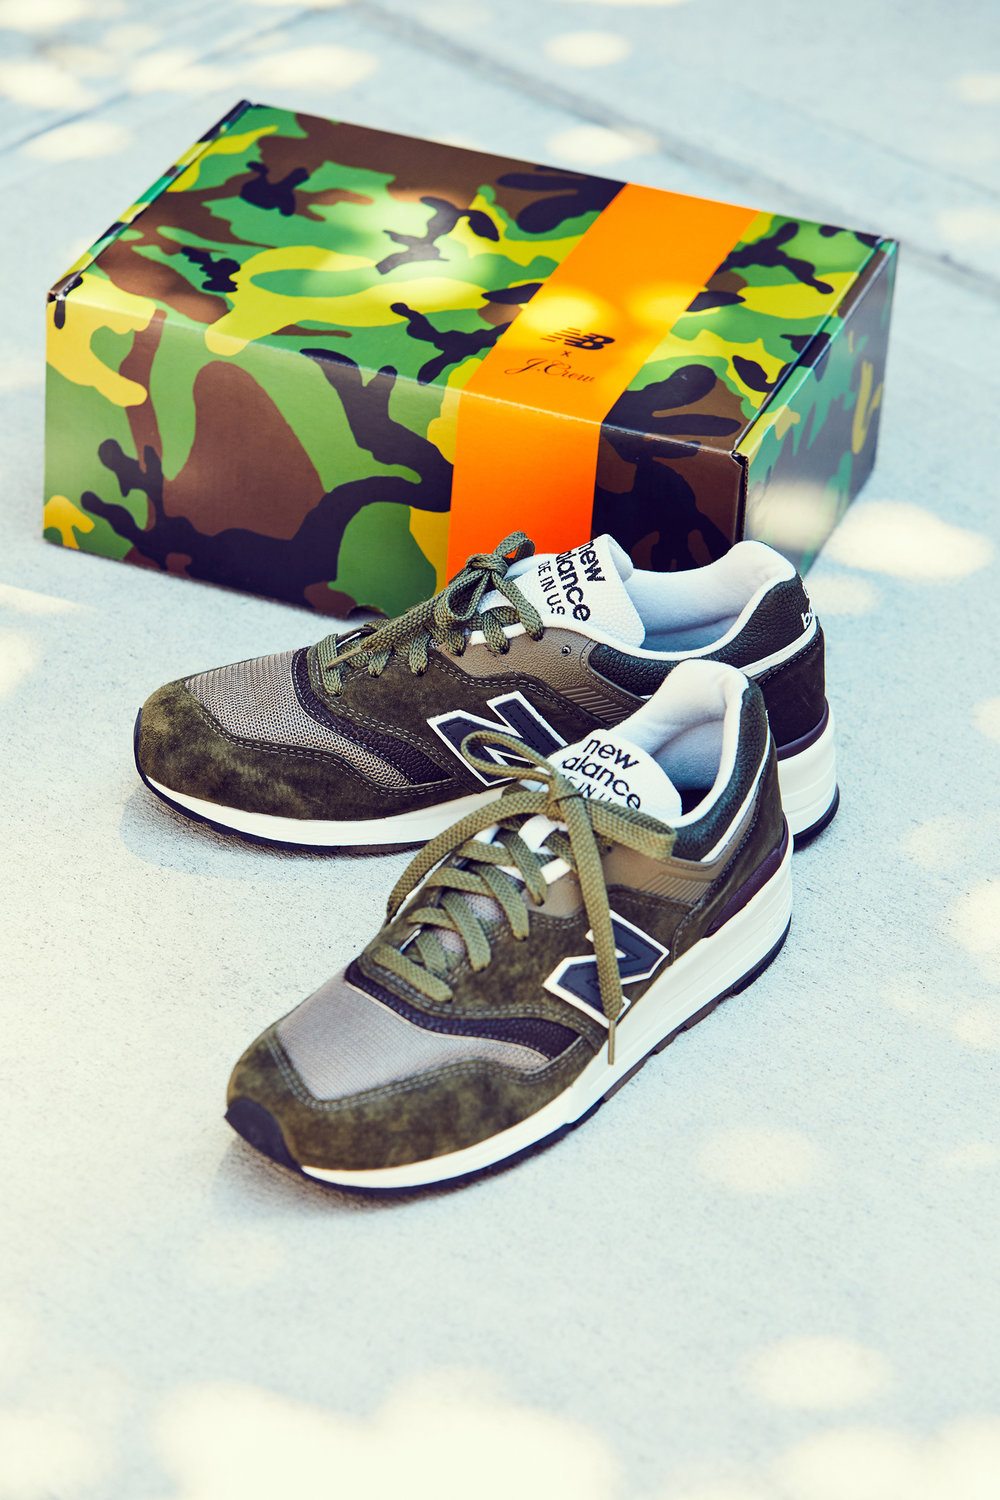 d94aad62ee5dc 170803_SM_Sep_HowItsDone_IG_0982_PR.jpg. American label J.Crew have been  collaborating with New Balance ...